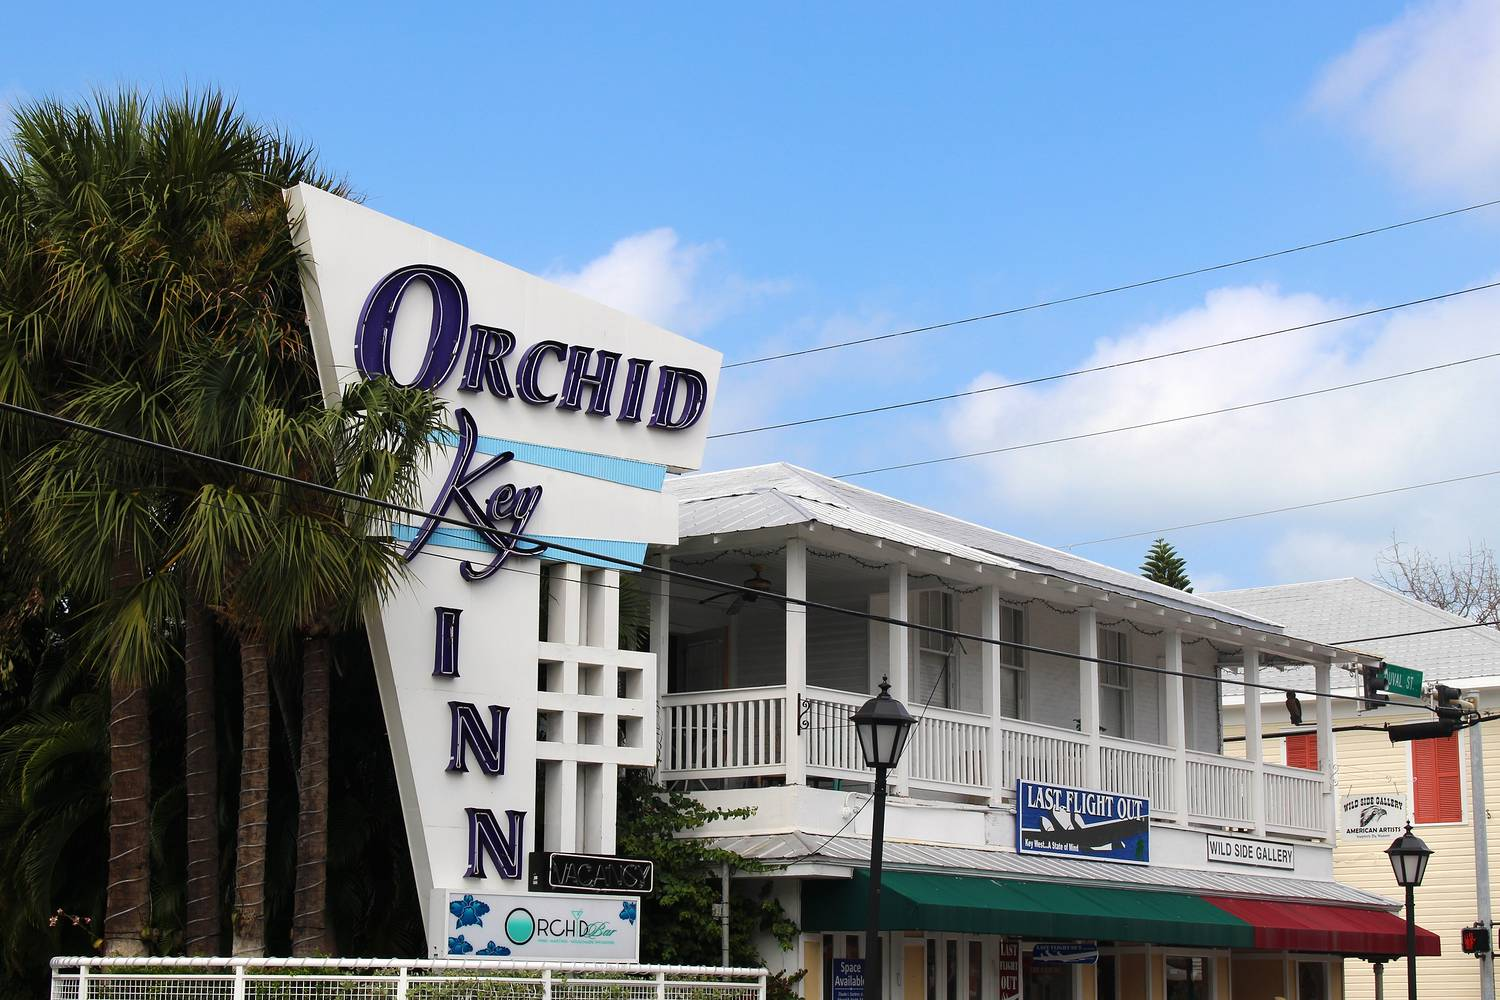 orchid hotel by Evan Fowler